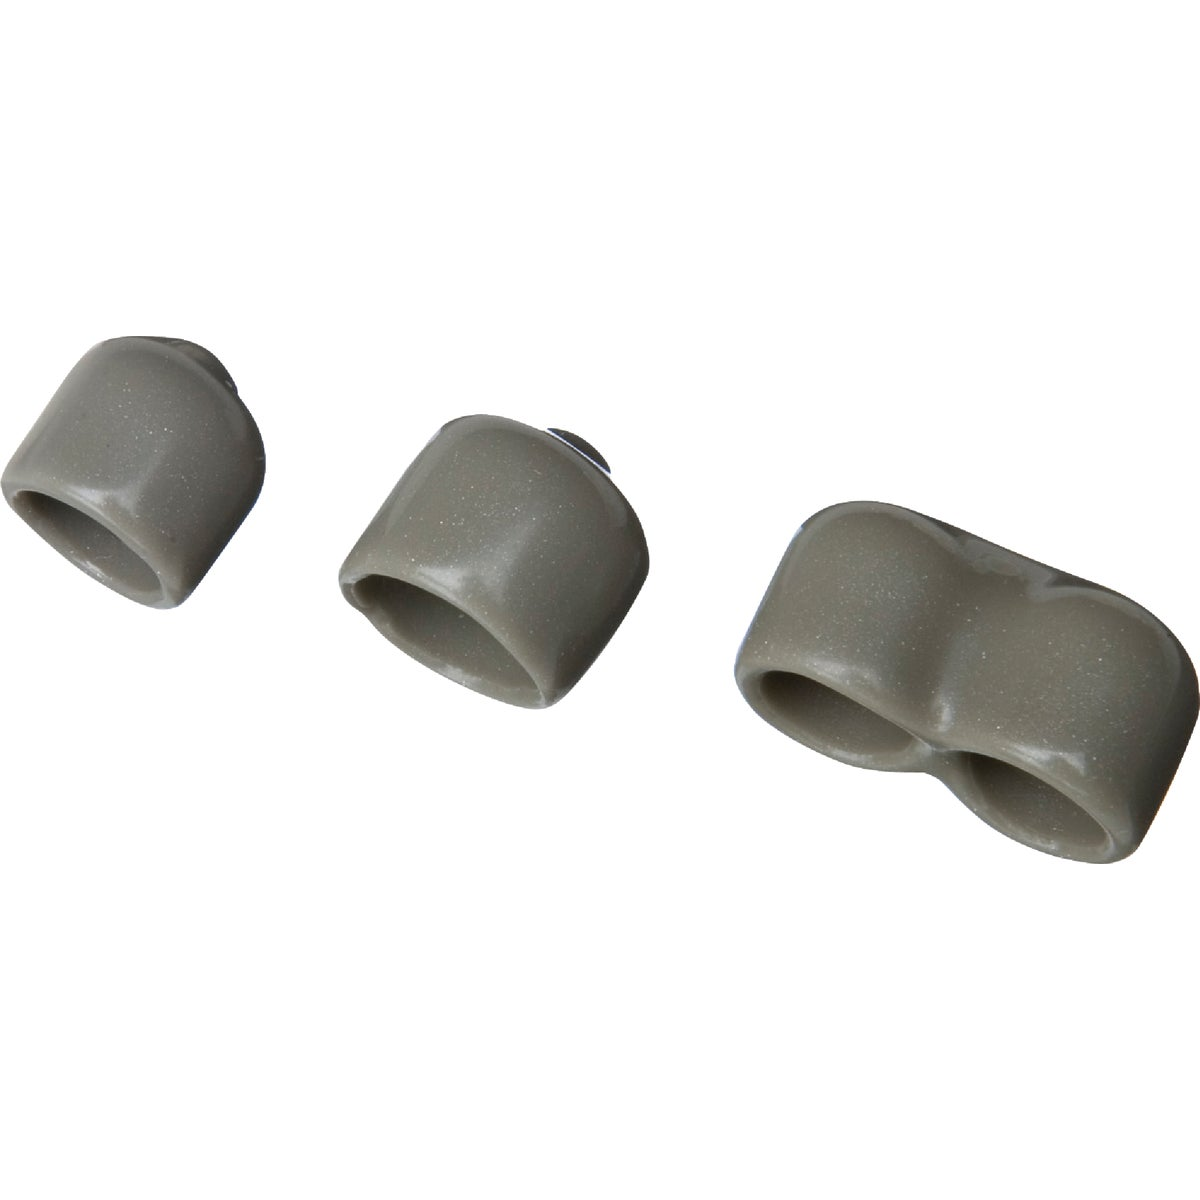 NICKEL PROFILE END CAPS - 7913660045 by Schulte Corp